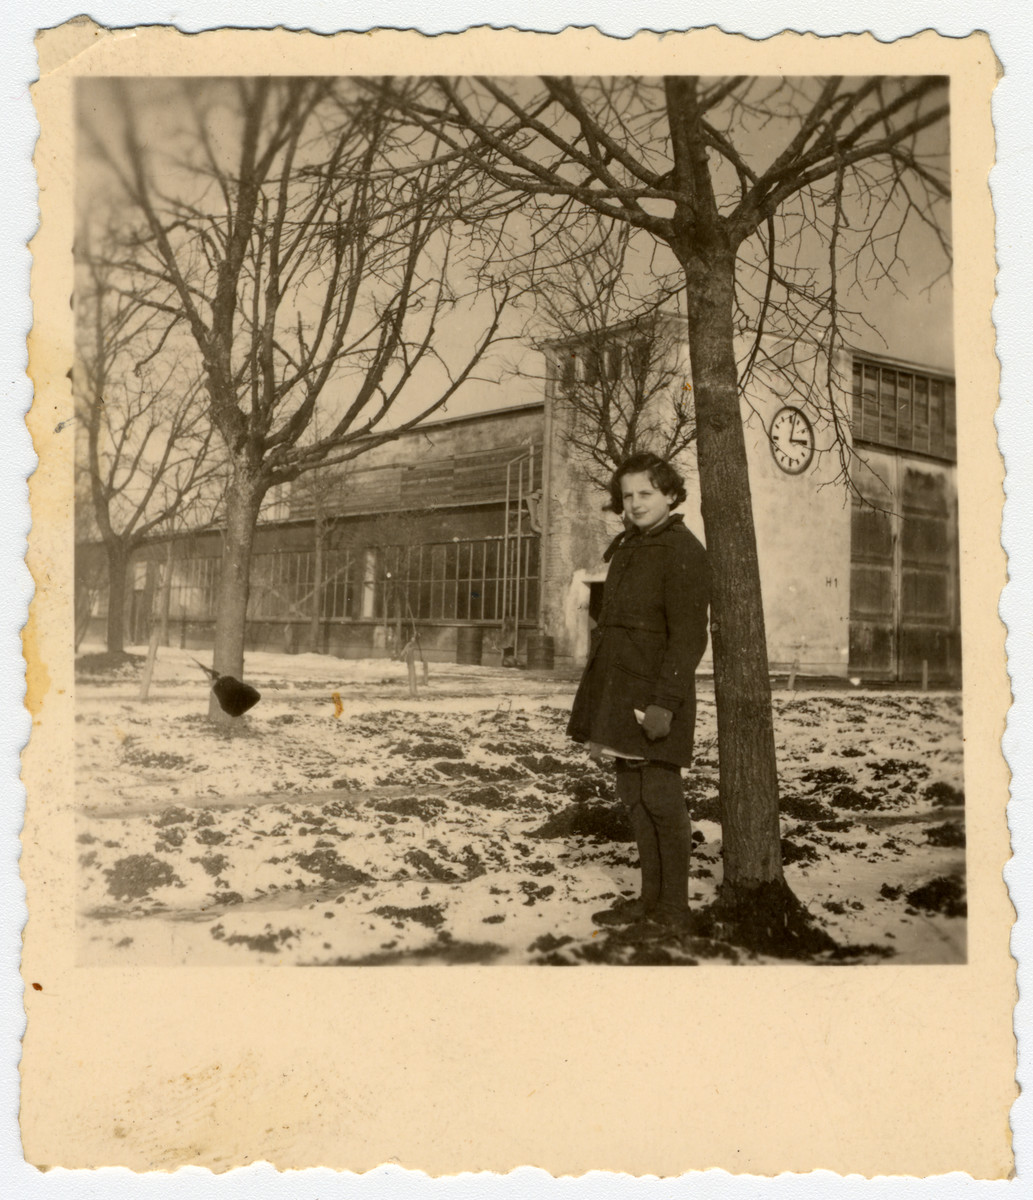 Sala Perec, a young Polish Jewish survivor, stands next to a tree outside the children's home in Dornstadt.